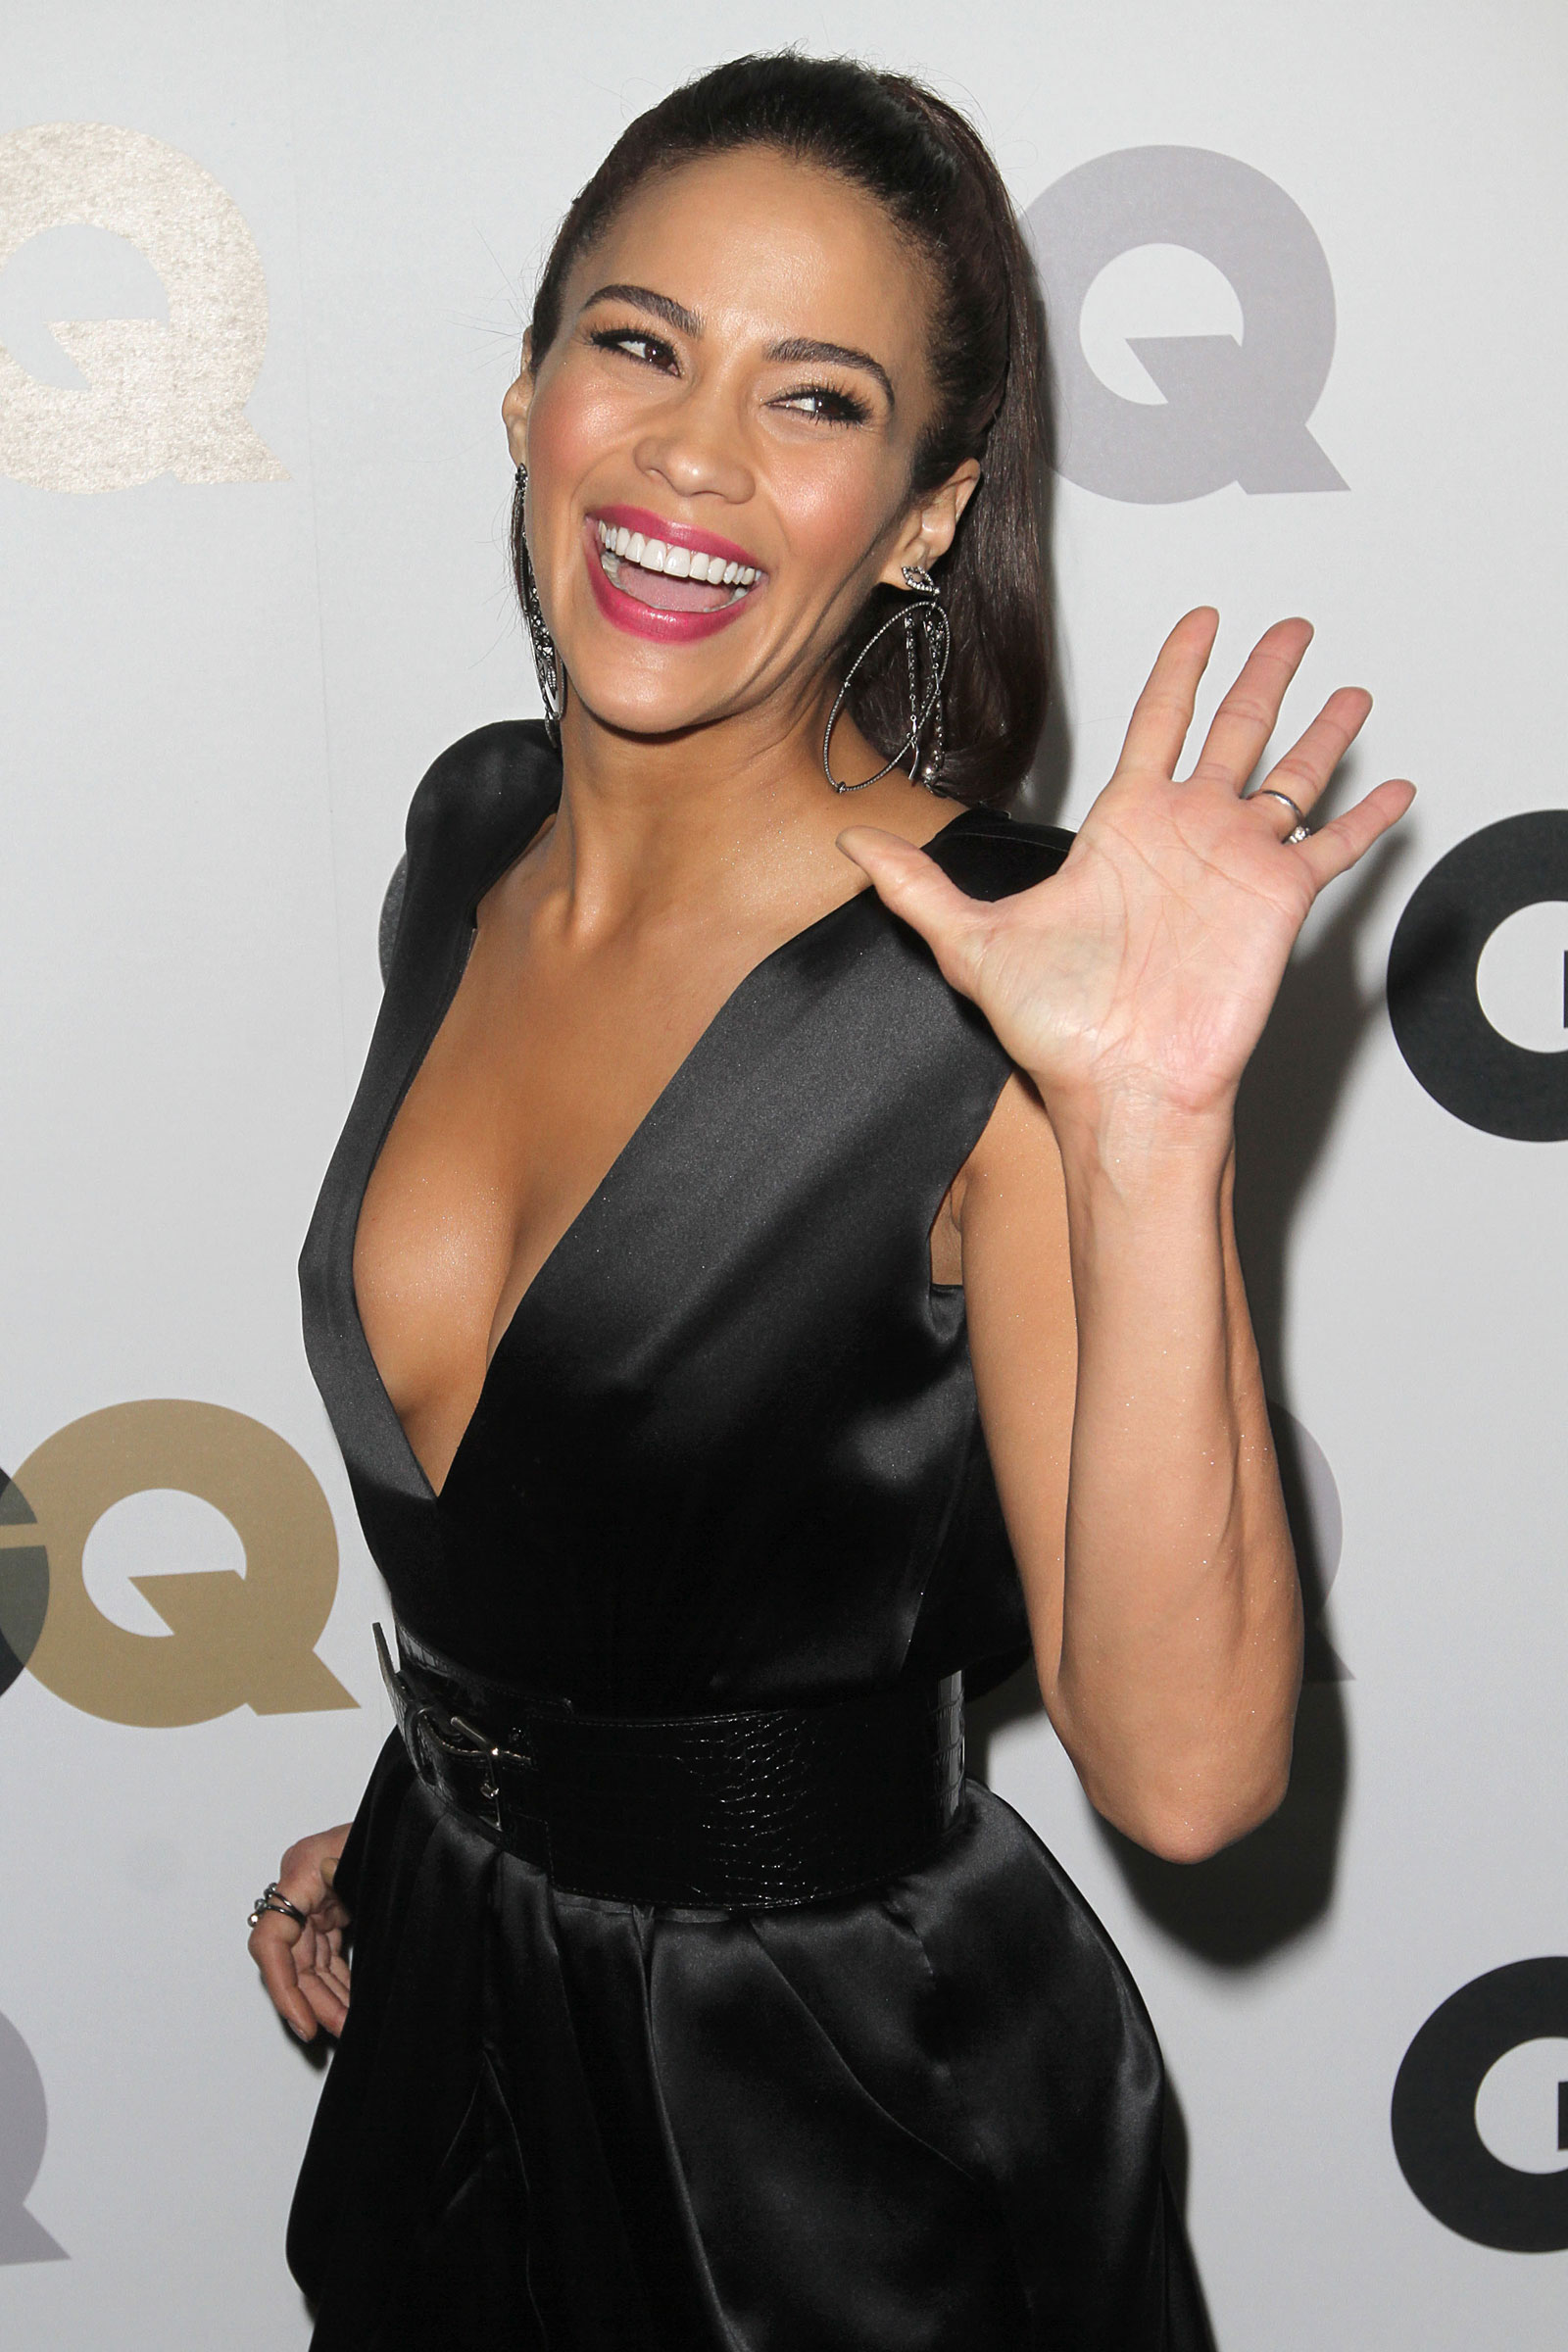 Los Angeles Quotes Wallpapers Paula Patton Project 4 Gallery